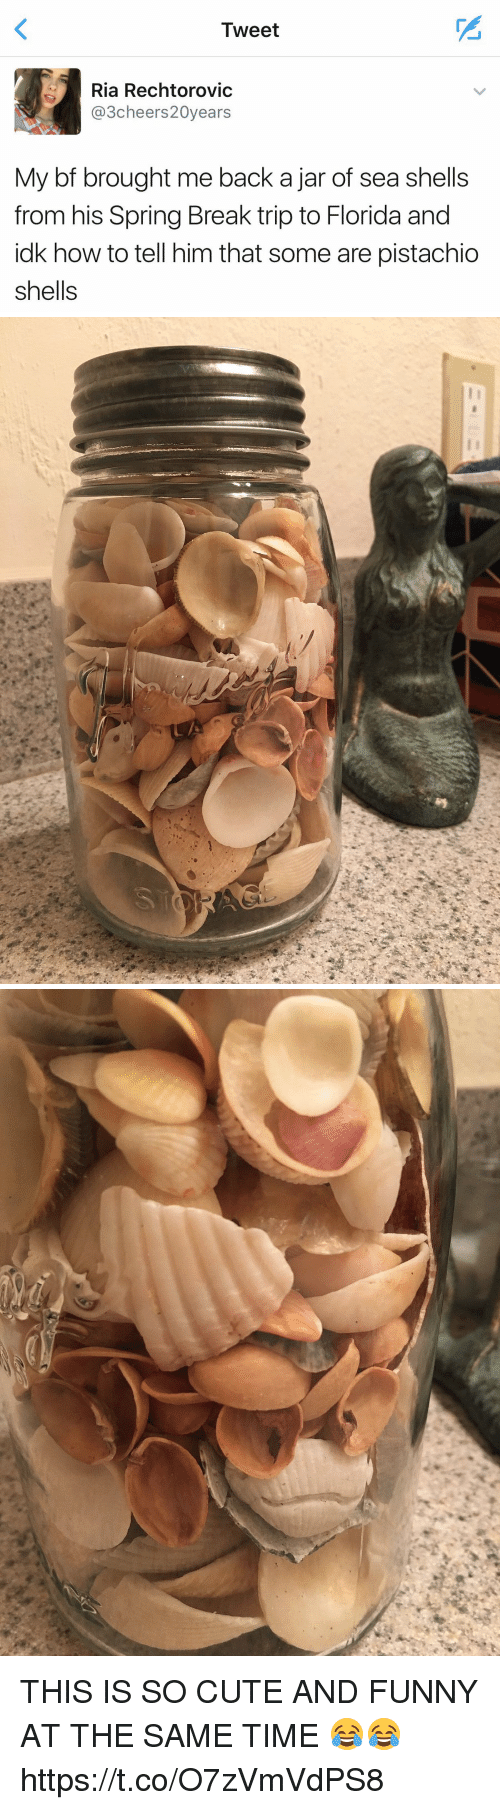 jarred: Tweet  Ria Rechtorovic  3cheers20years  My bf brought me back a jar of sea shells  from his Spring Break trip to Florida and  idk how to tell him that some are pistachio  shells   ソ THIS IS SO CUTE AND FUNNY AT THE SAME TIME 😂😂 https://t.co/O7zVmVdPS8